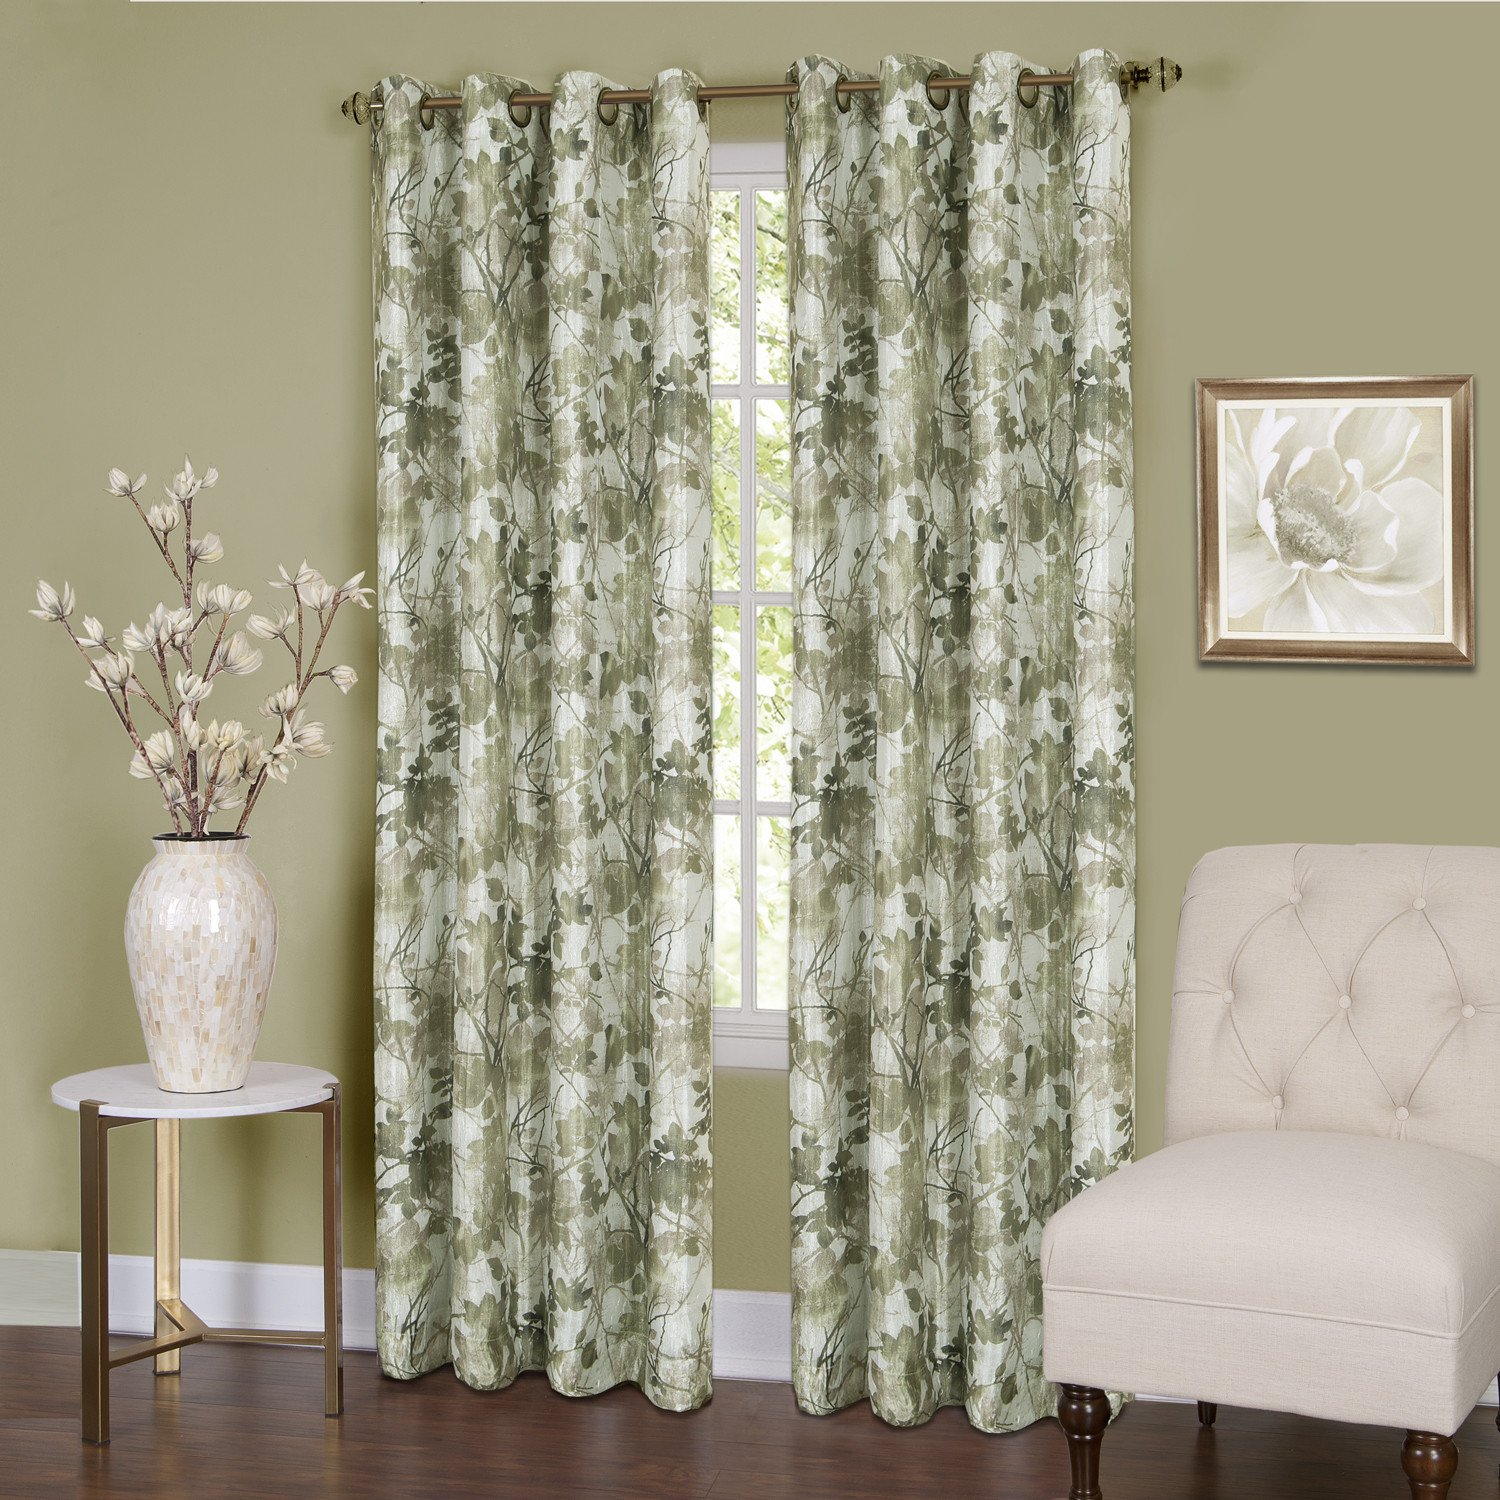 Serenity Floral Set of 2 Energy Efficient Blackout Curtain Panels Grommets - Sage